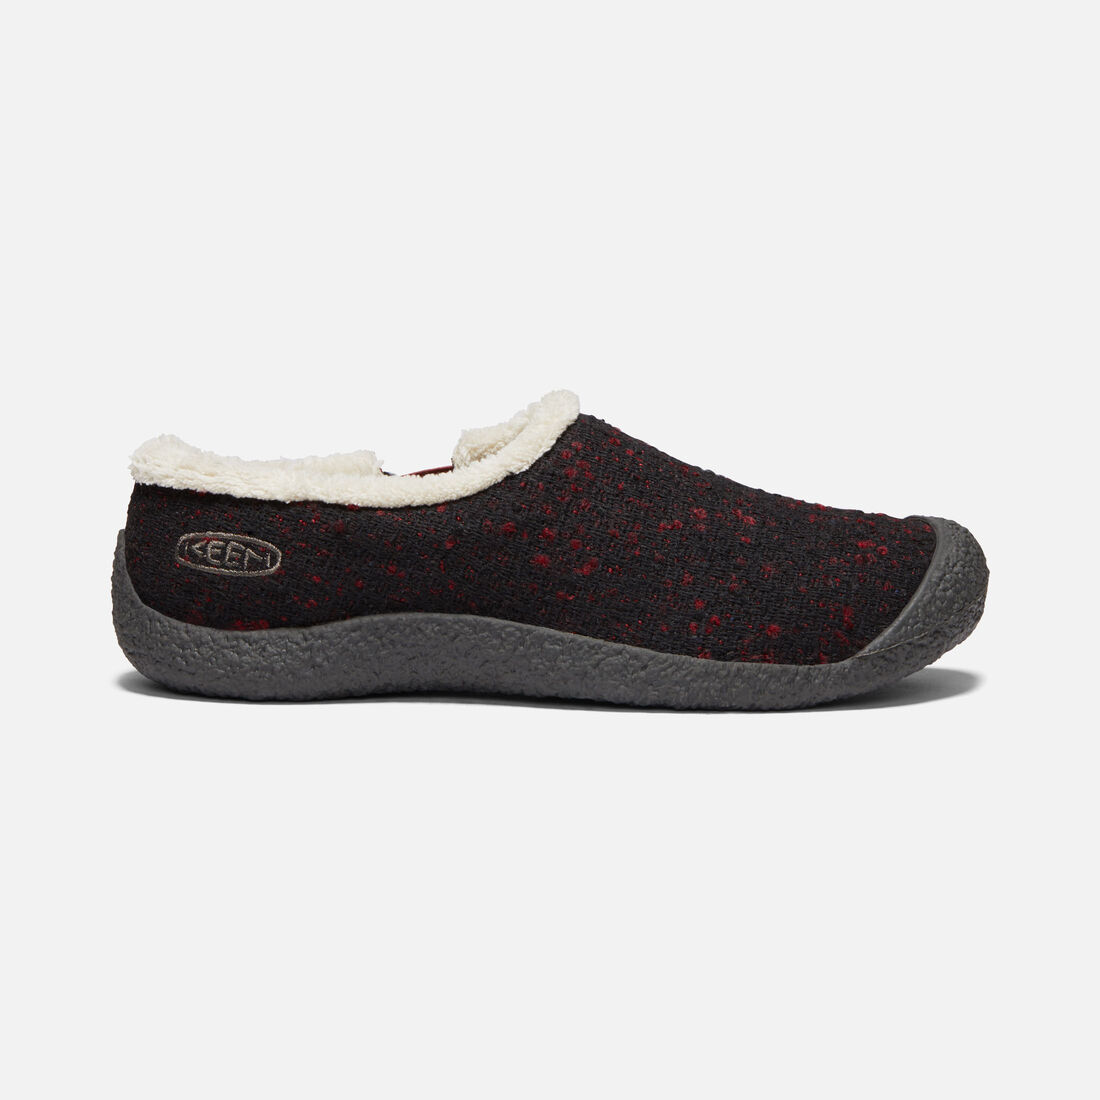 8bfdd043b88f Women s Howser Wool Slide in FIRED BRICK RAVEN - large view.